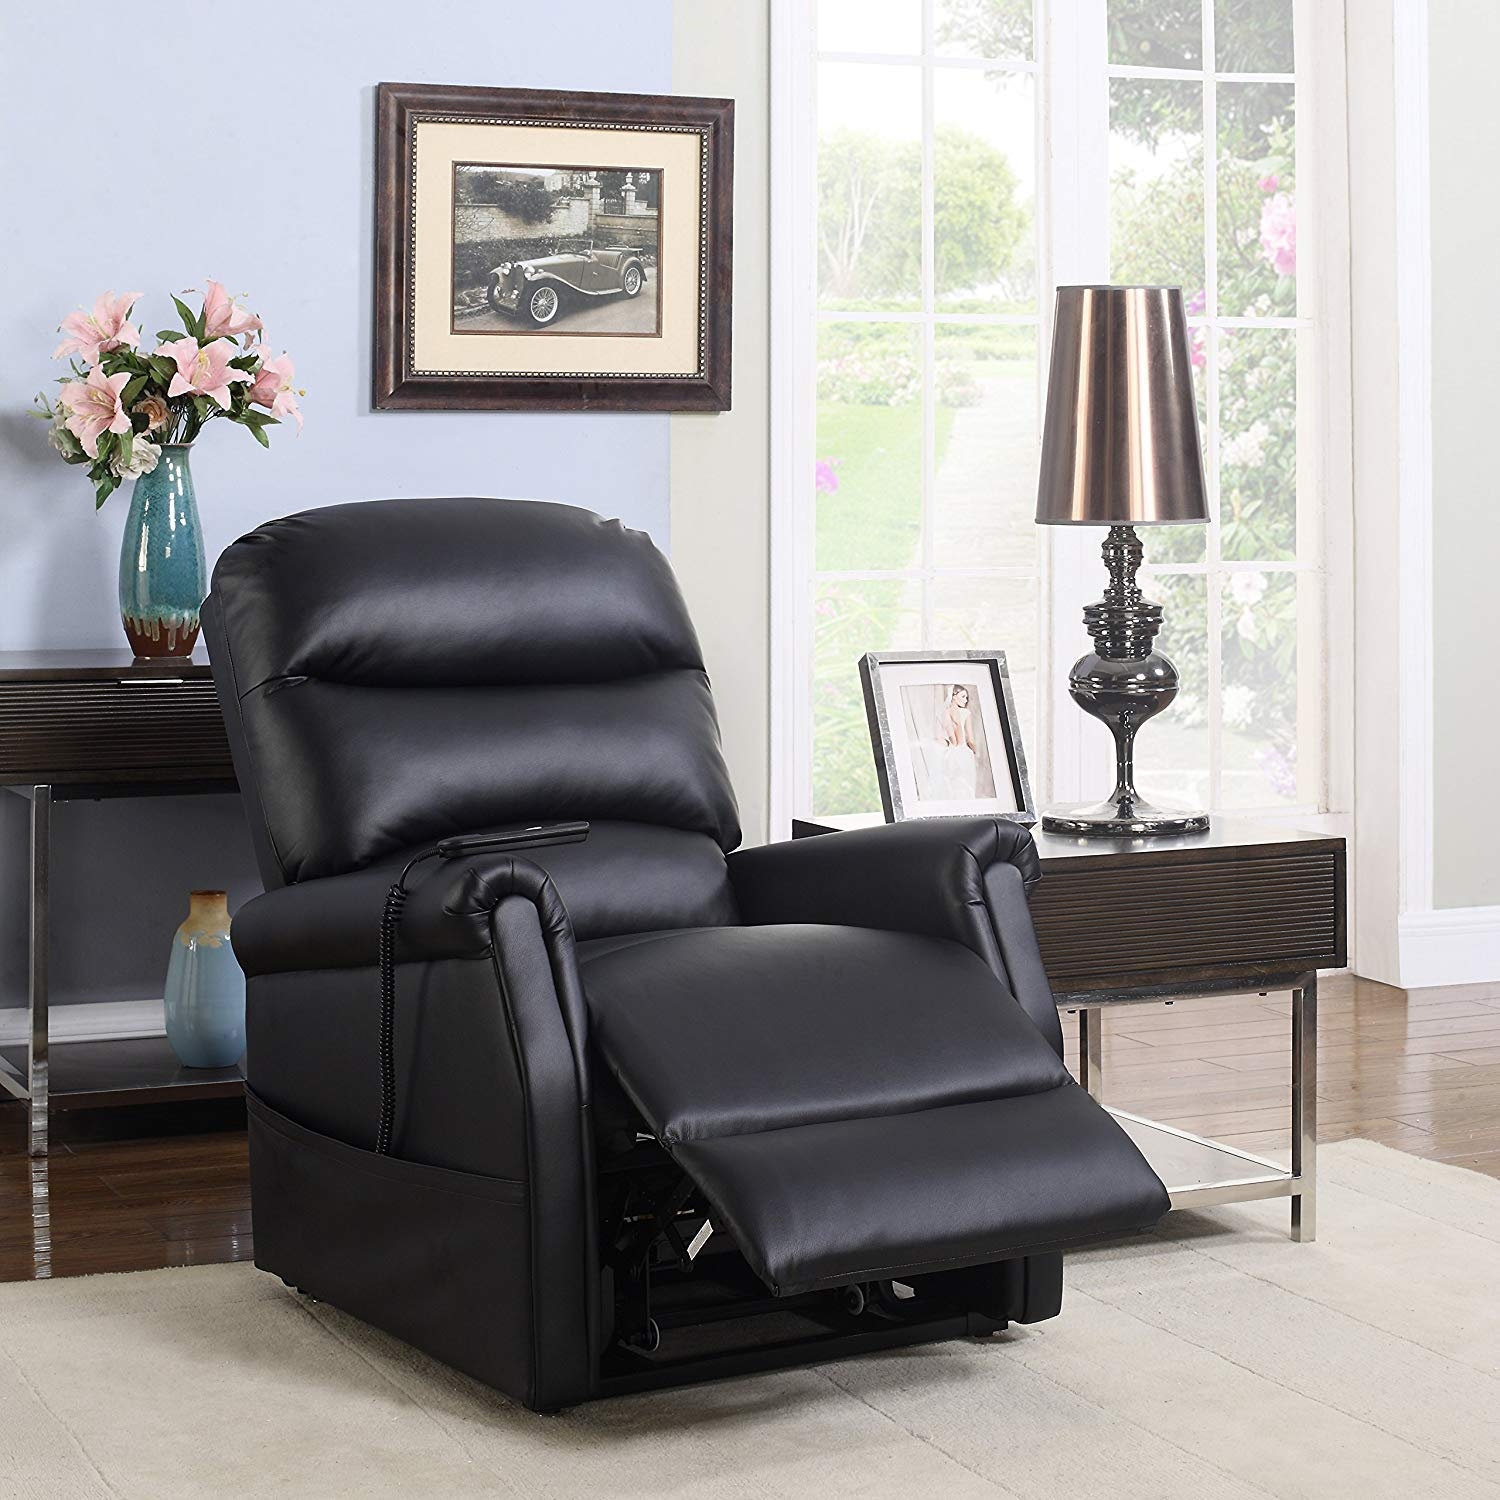 KosmoCare Electric Recliner Chair